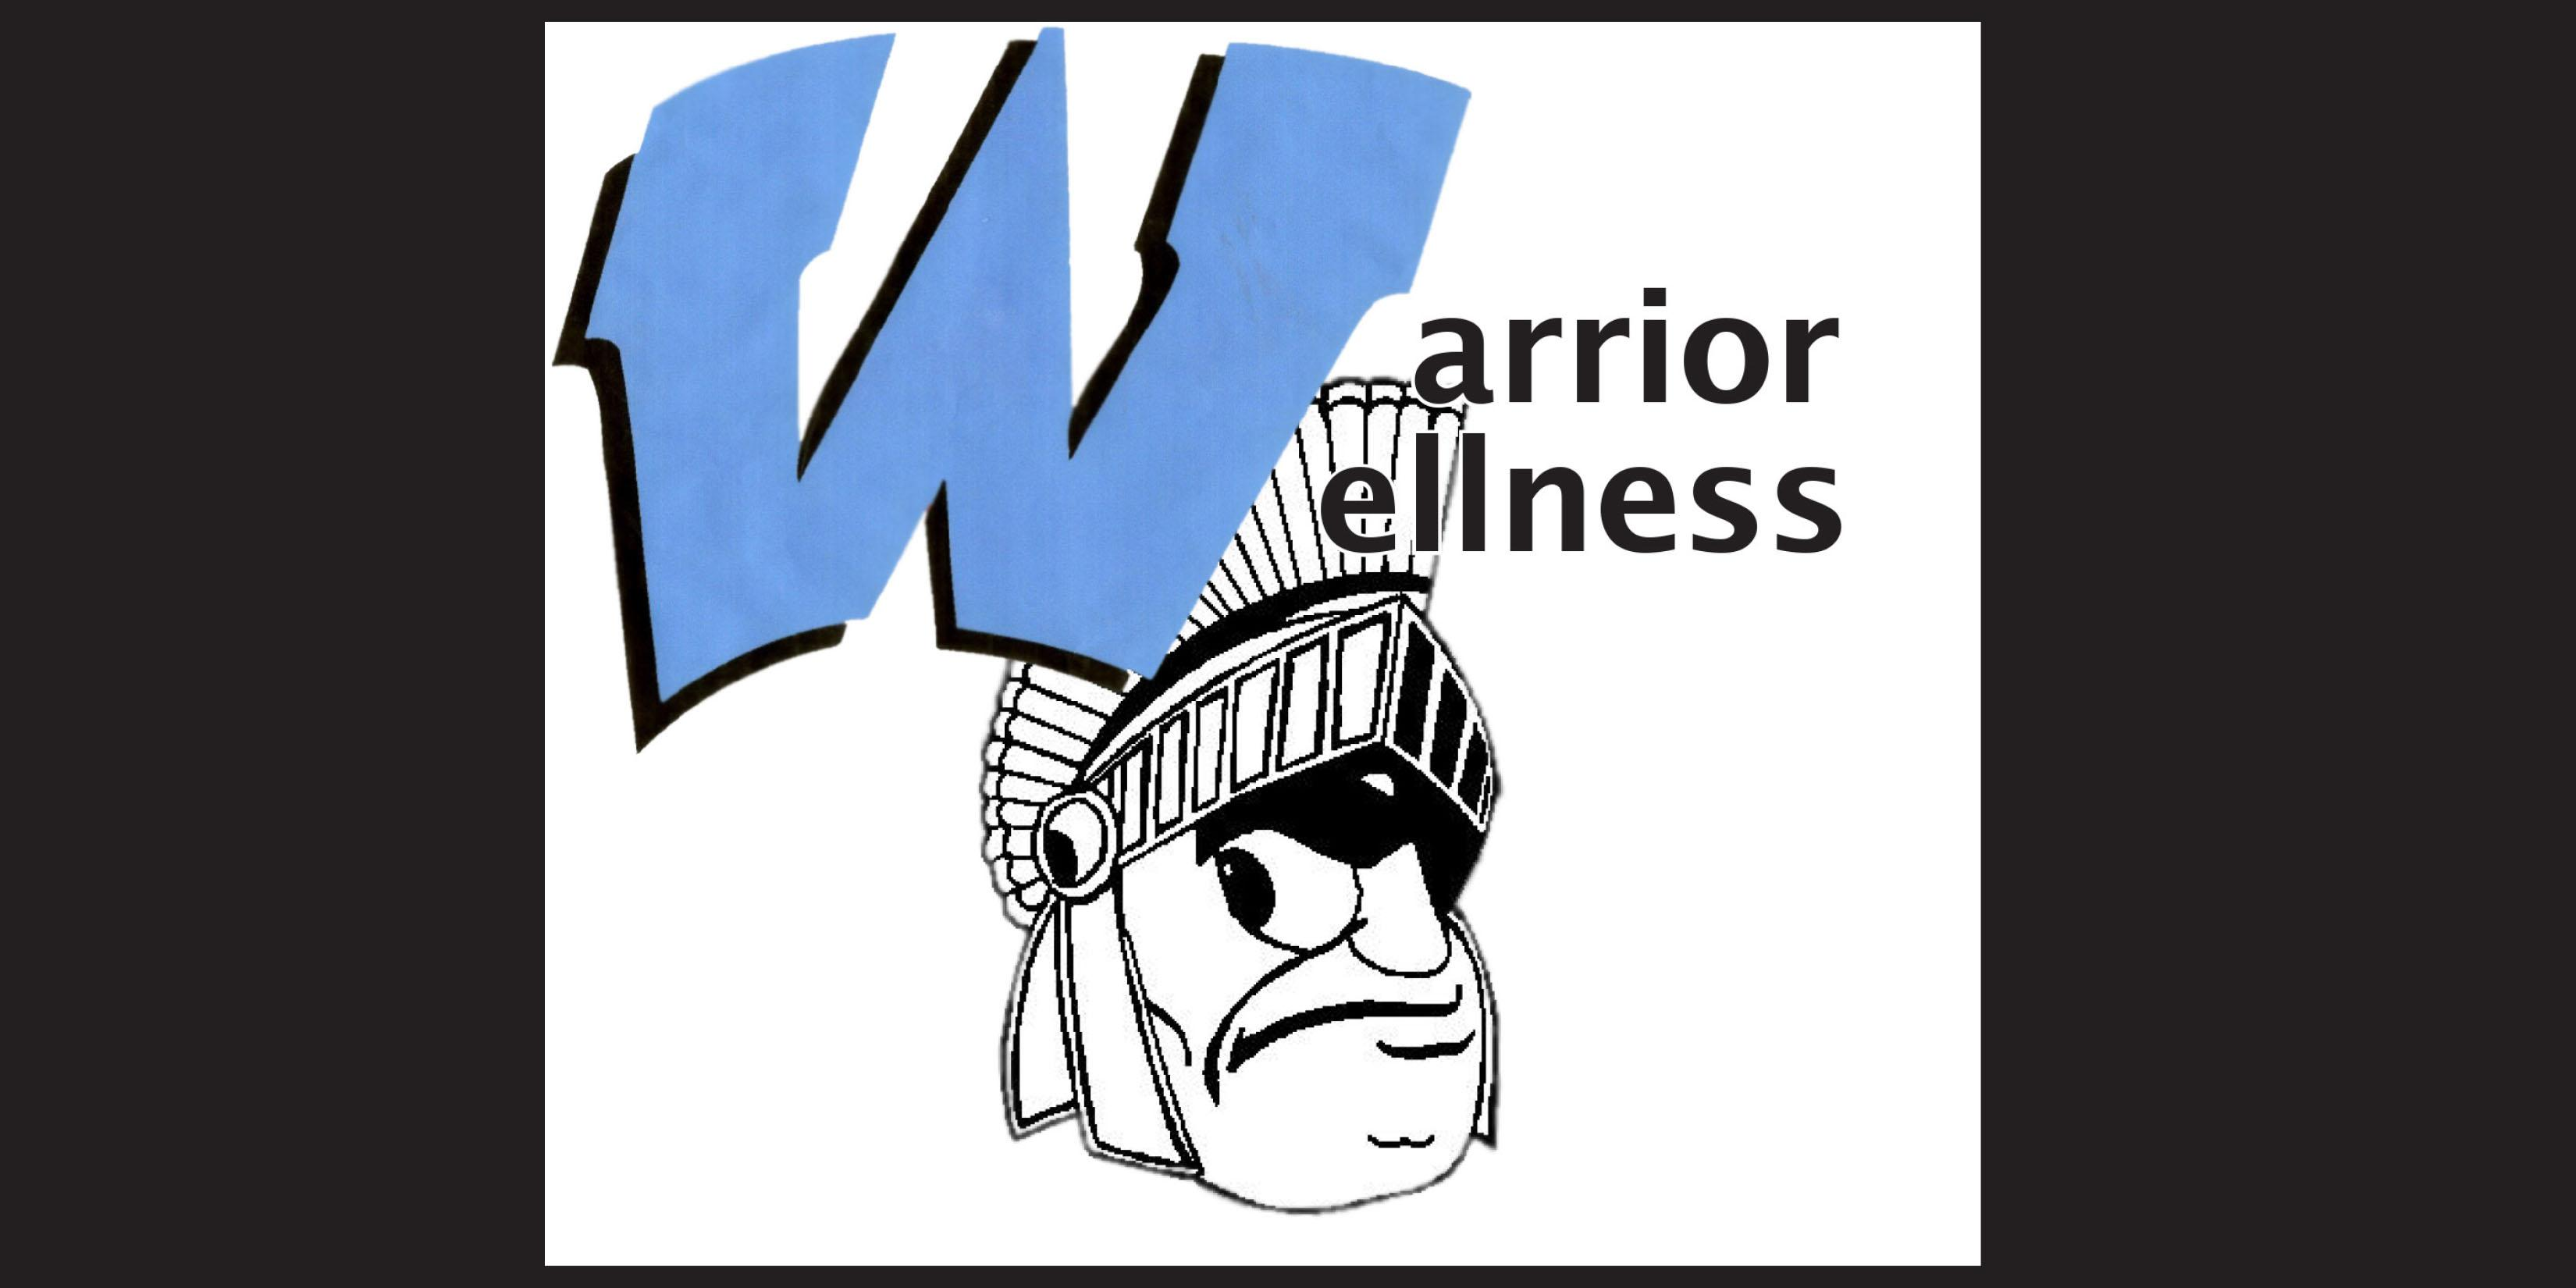 Warrior Wellness: Willowbrook Physical Education Department shares an inside look at ACHIEVE Physical Education class